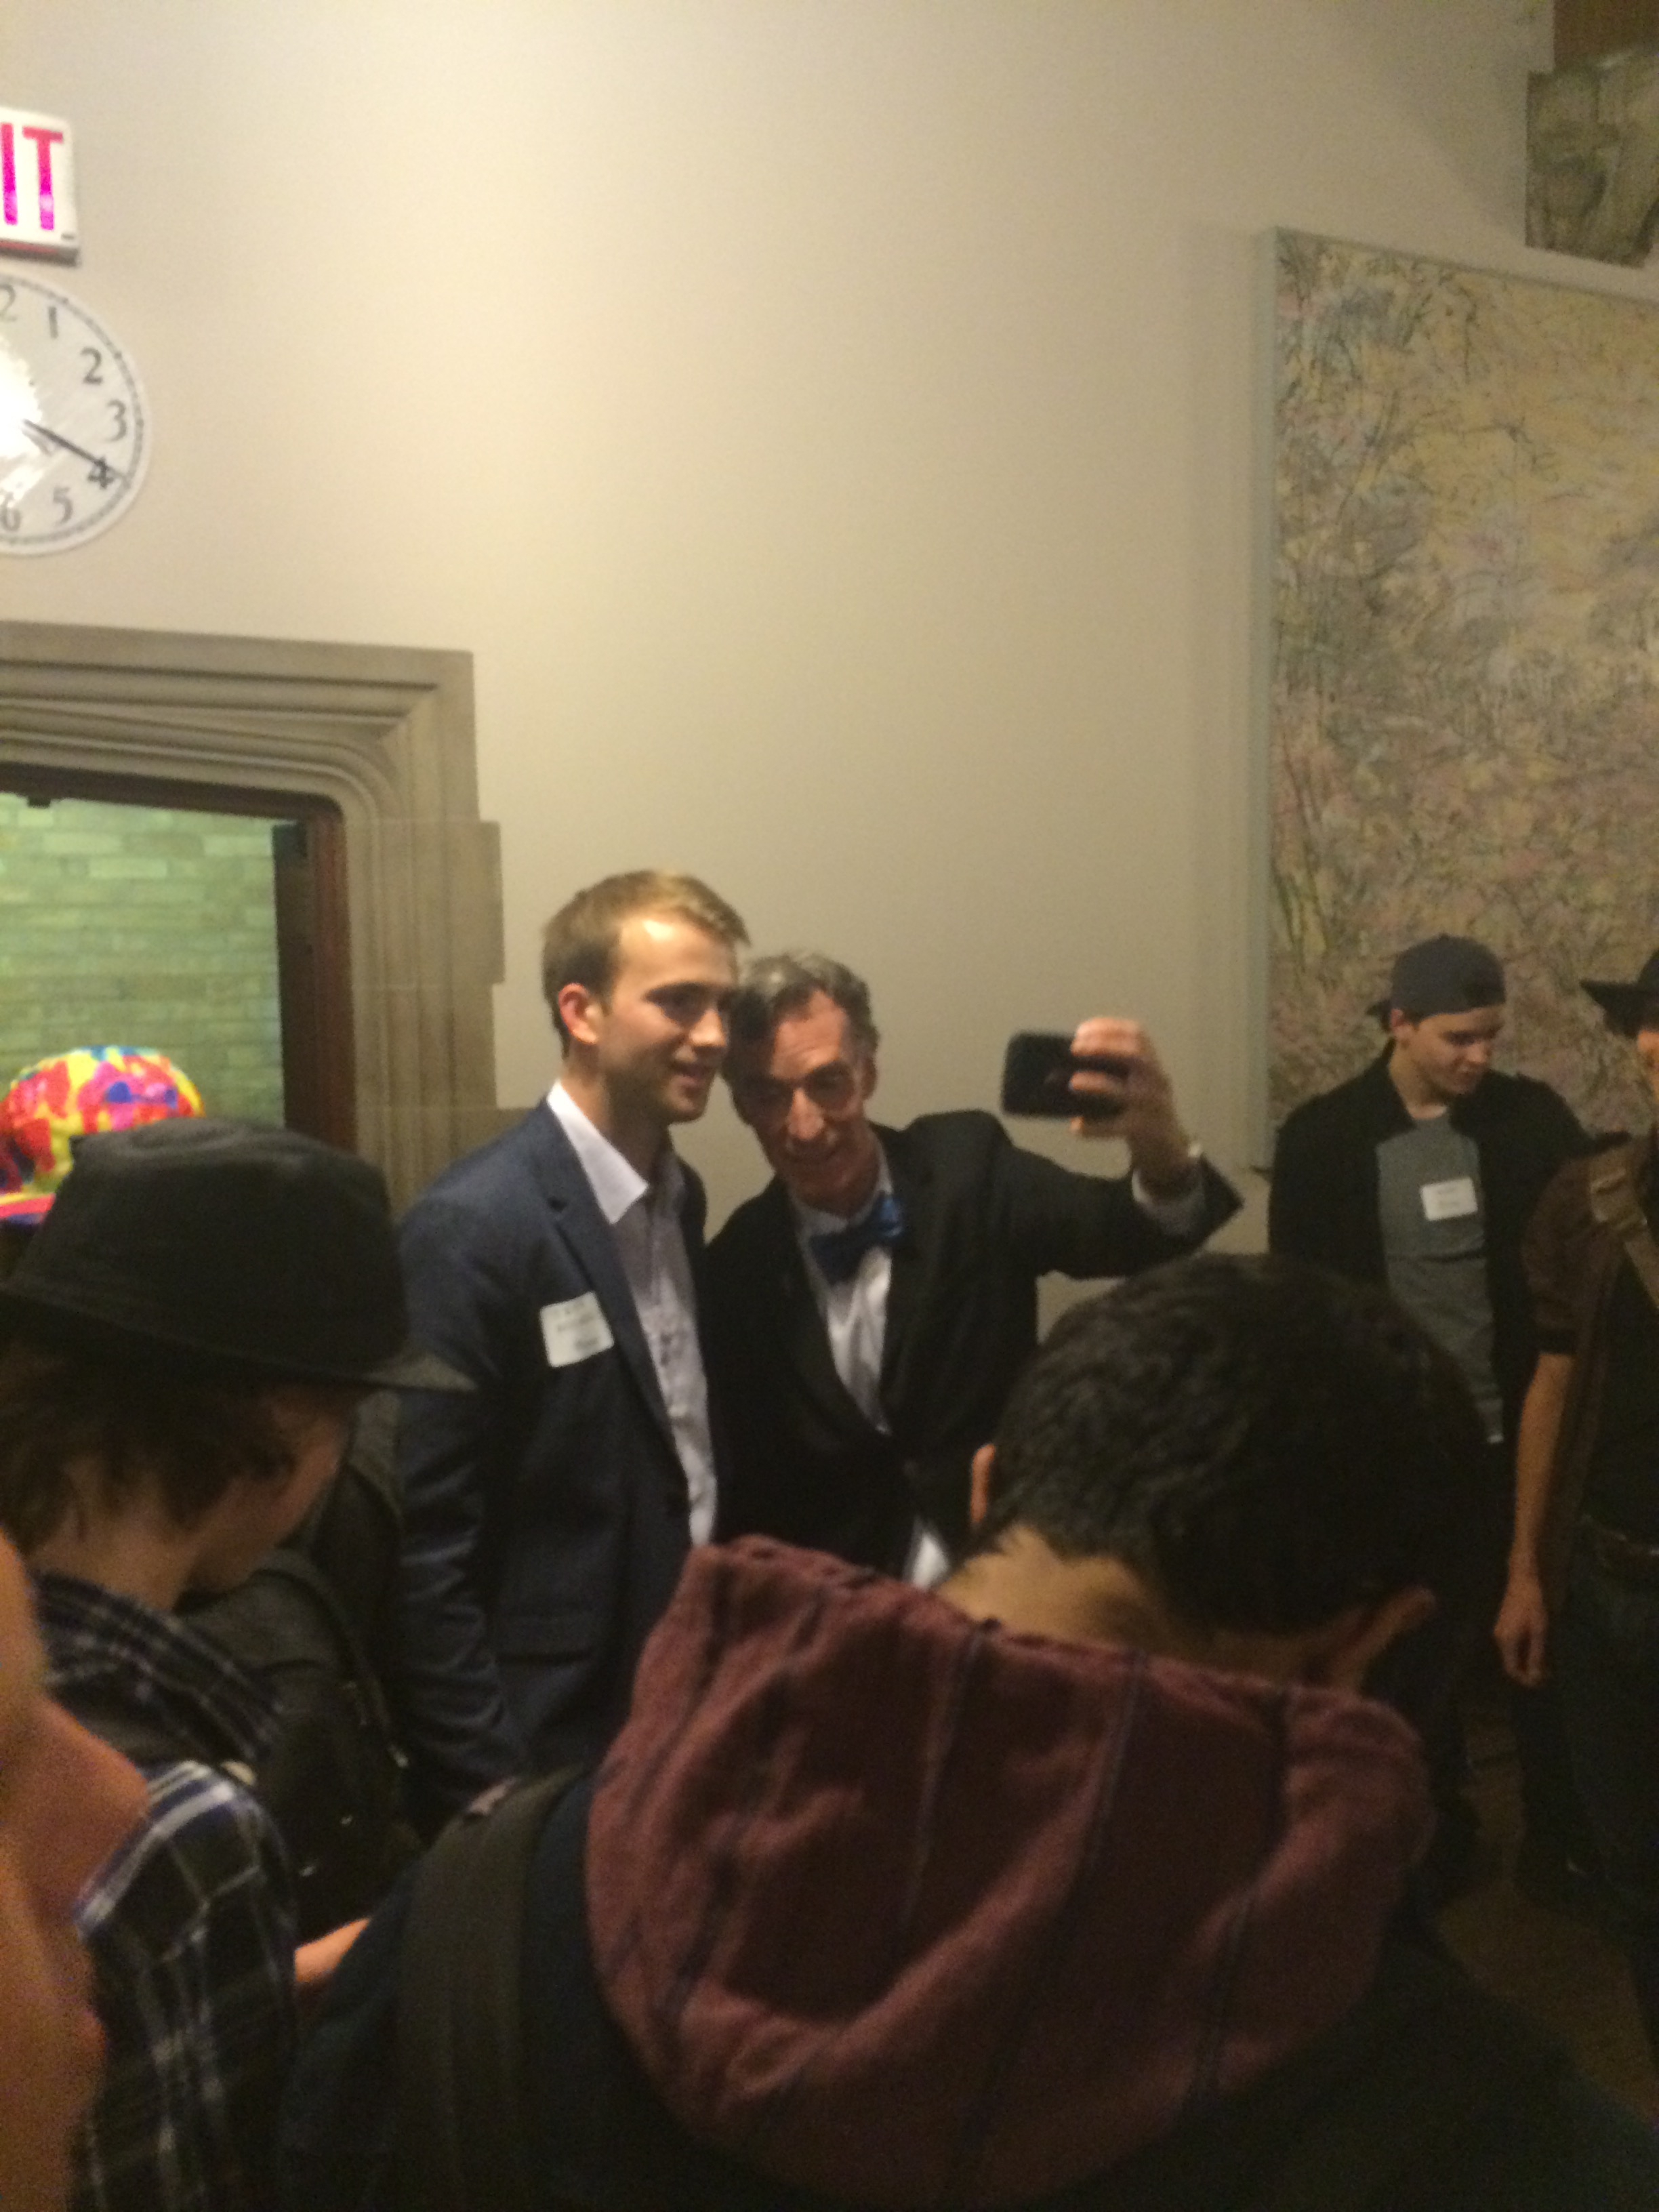 Bill Nye and guests at the Hart House reception